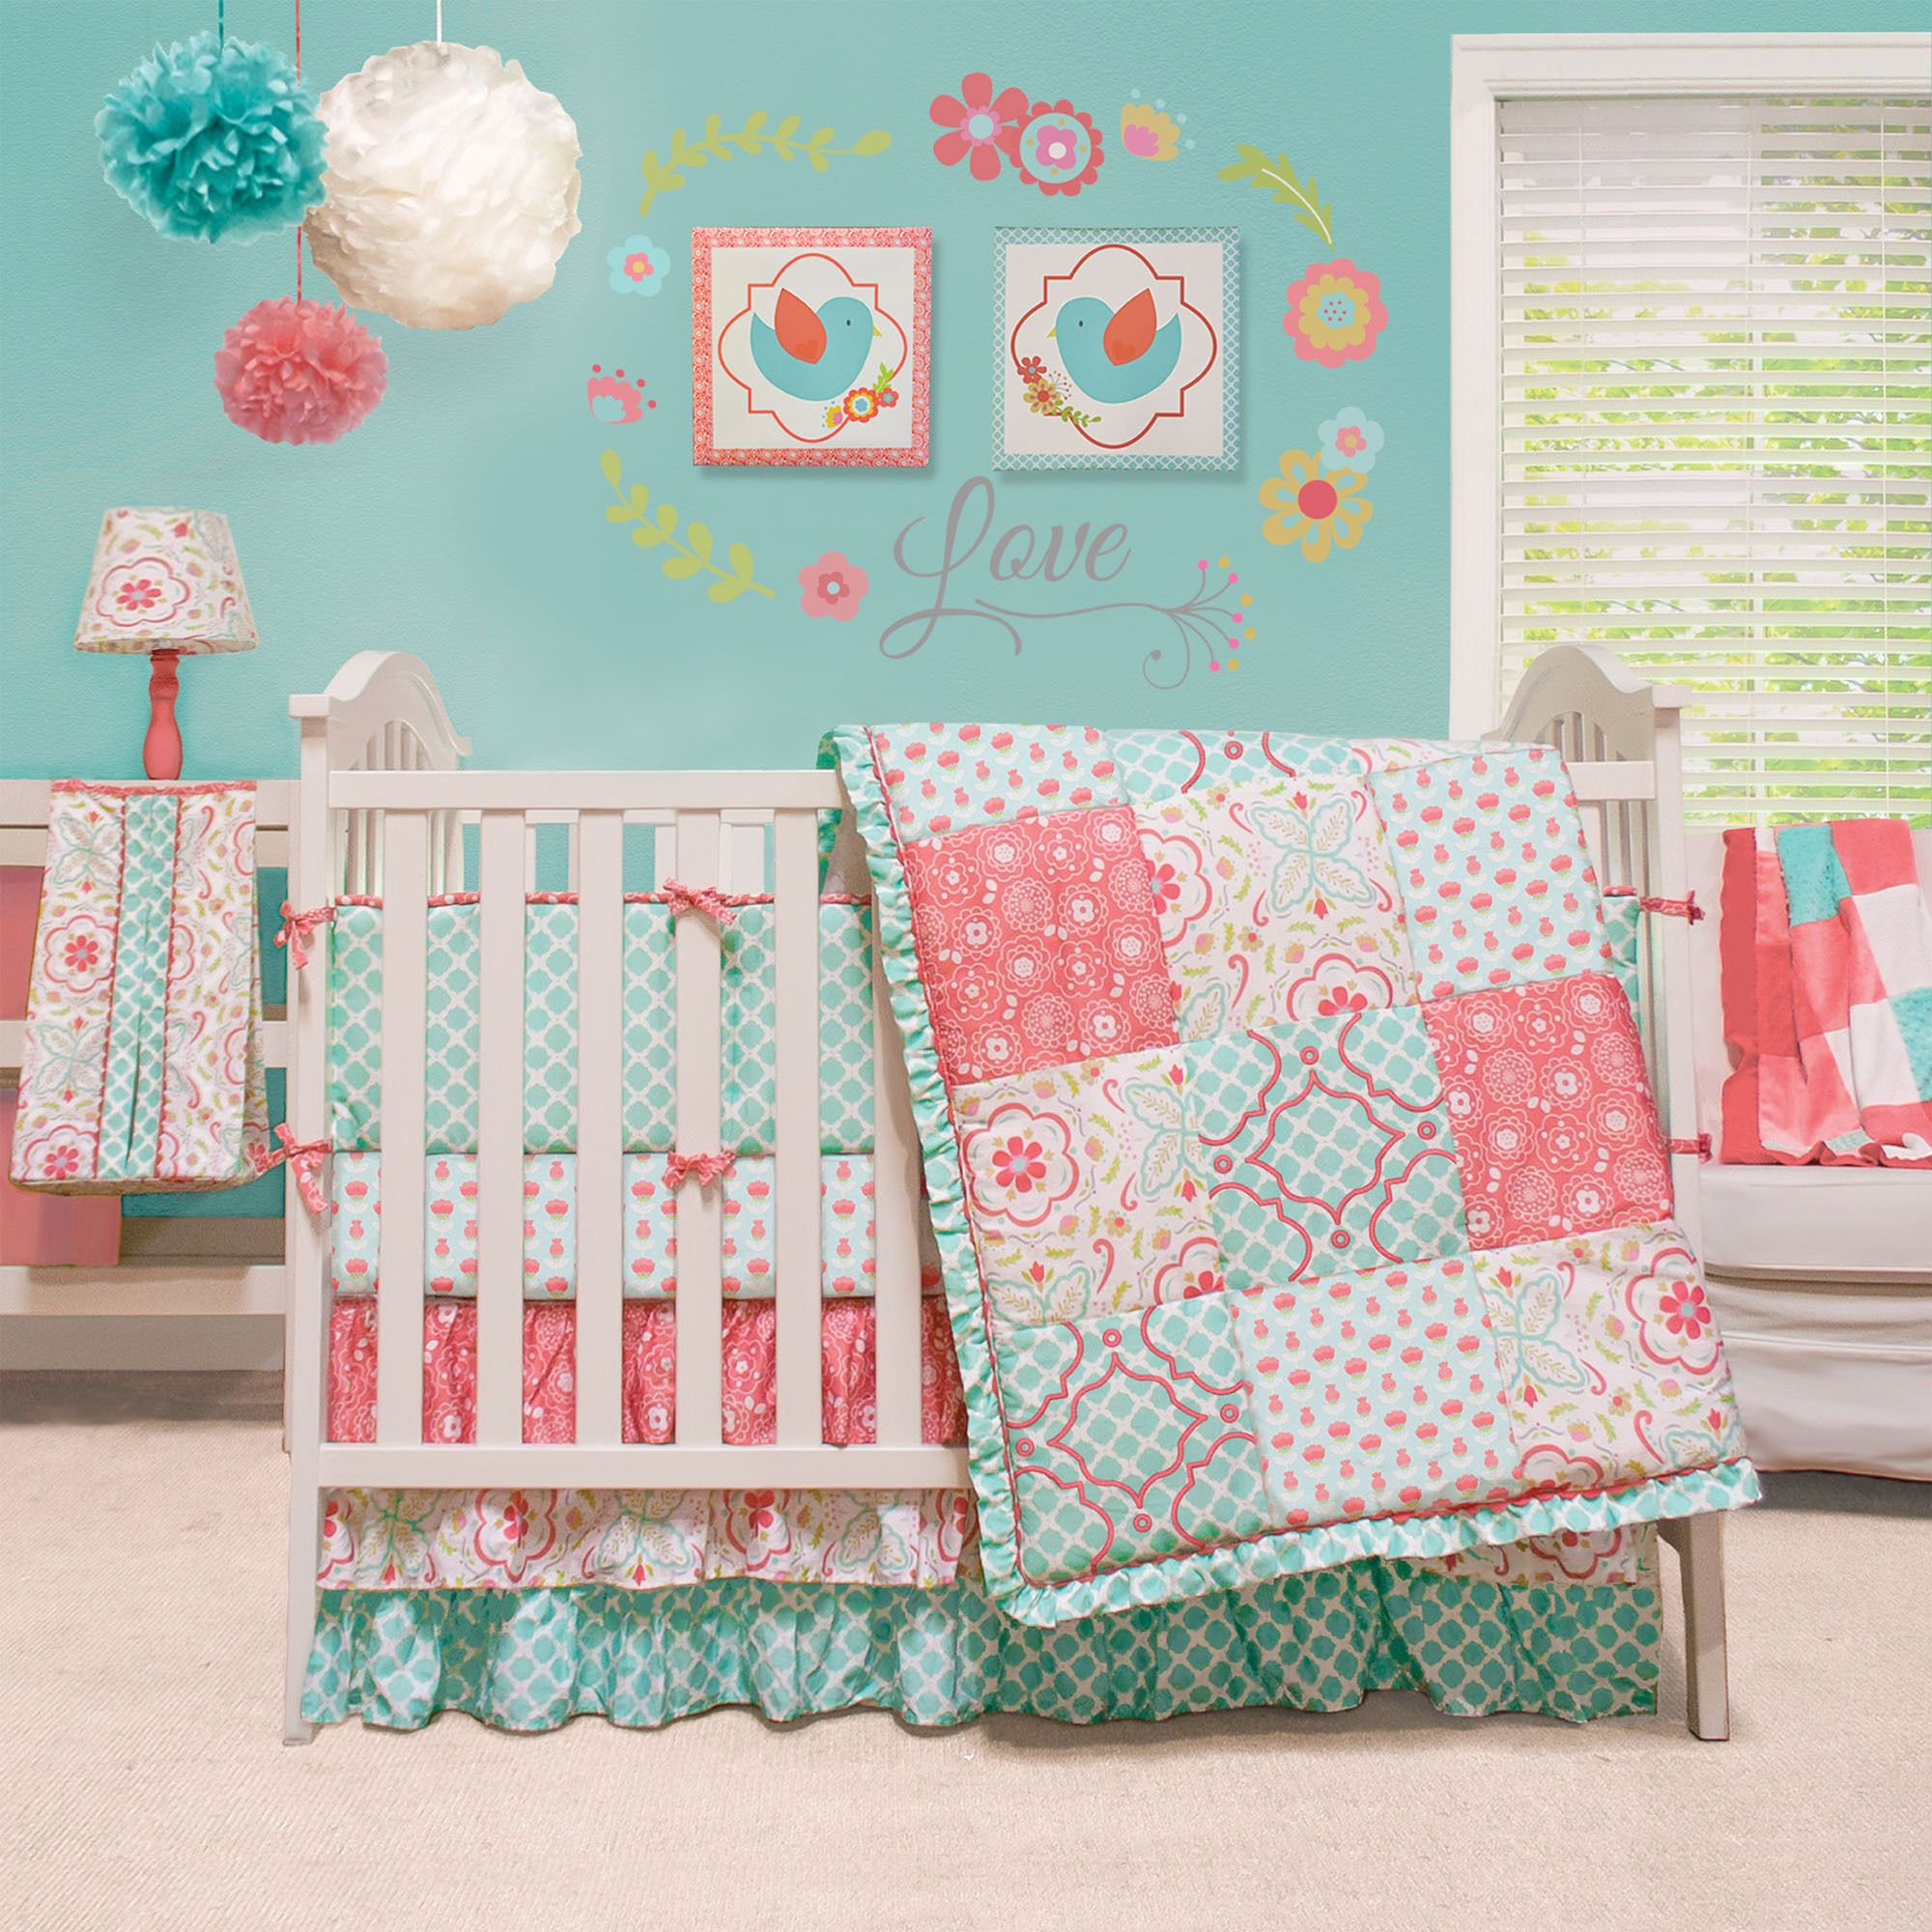 The Peanut Shell Mila 4 piece crib bedding set features a traditional patchwork design with a combination of contemporary floral and graphic prints in a vivid colorway of aqua, white, green and coral.